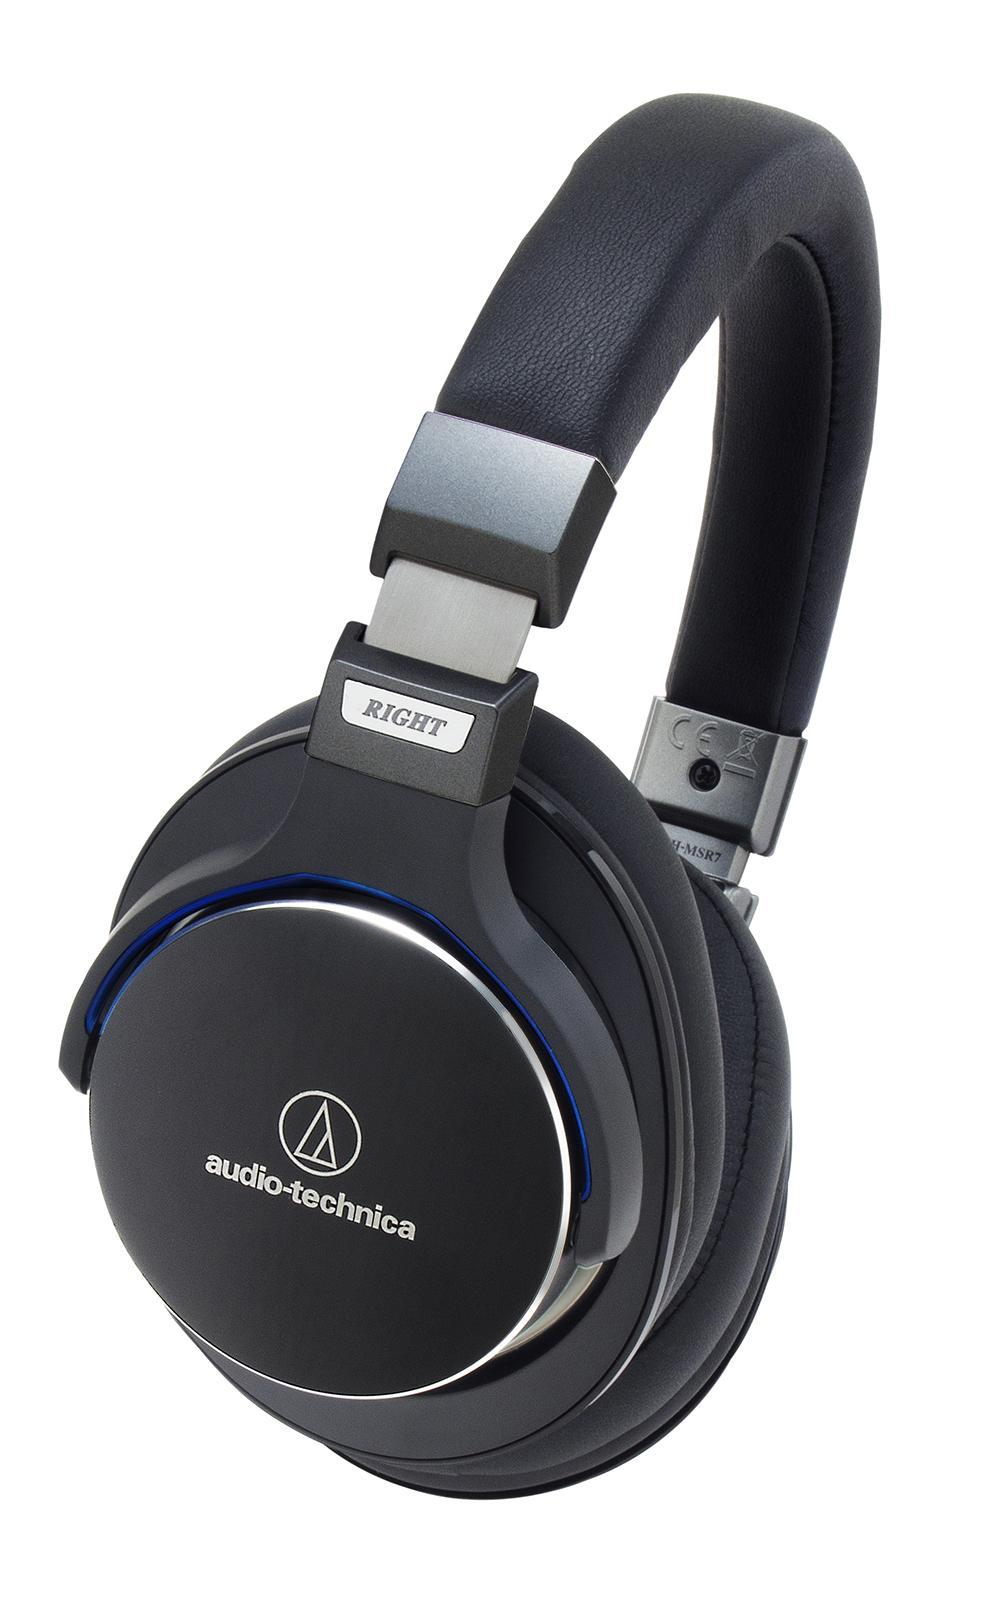 Audio-Technica ATH-MSR7, Black наушники наушники audio technica ath m50x black